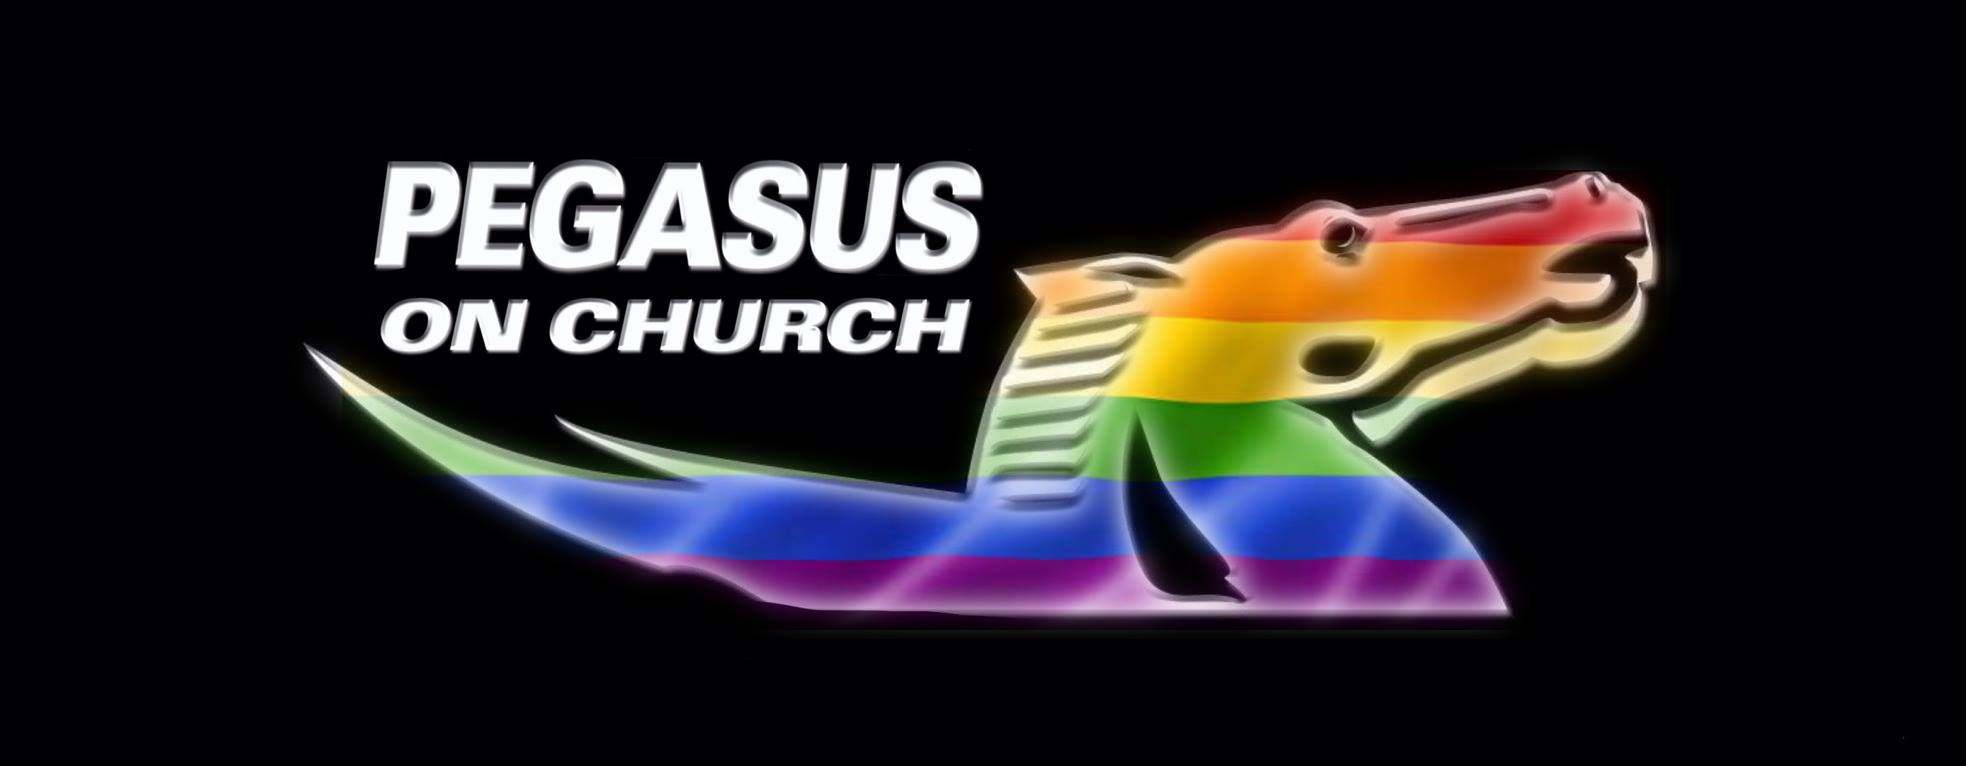 Pegasus is a gay bar on Church Street, where you can play darts, and other games